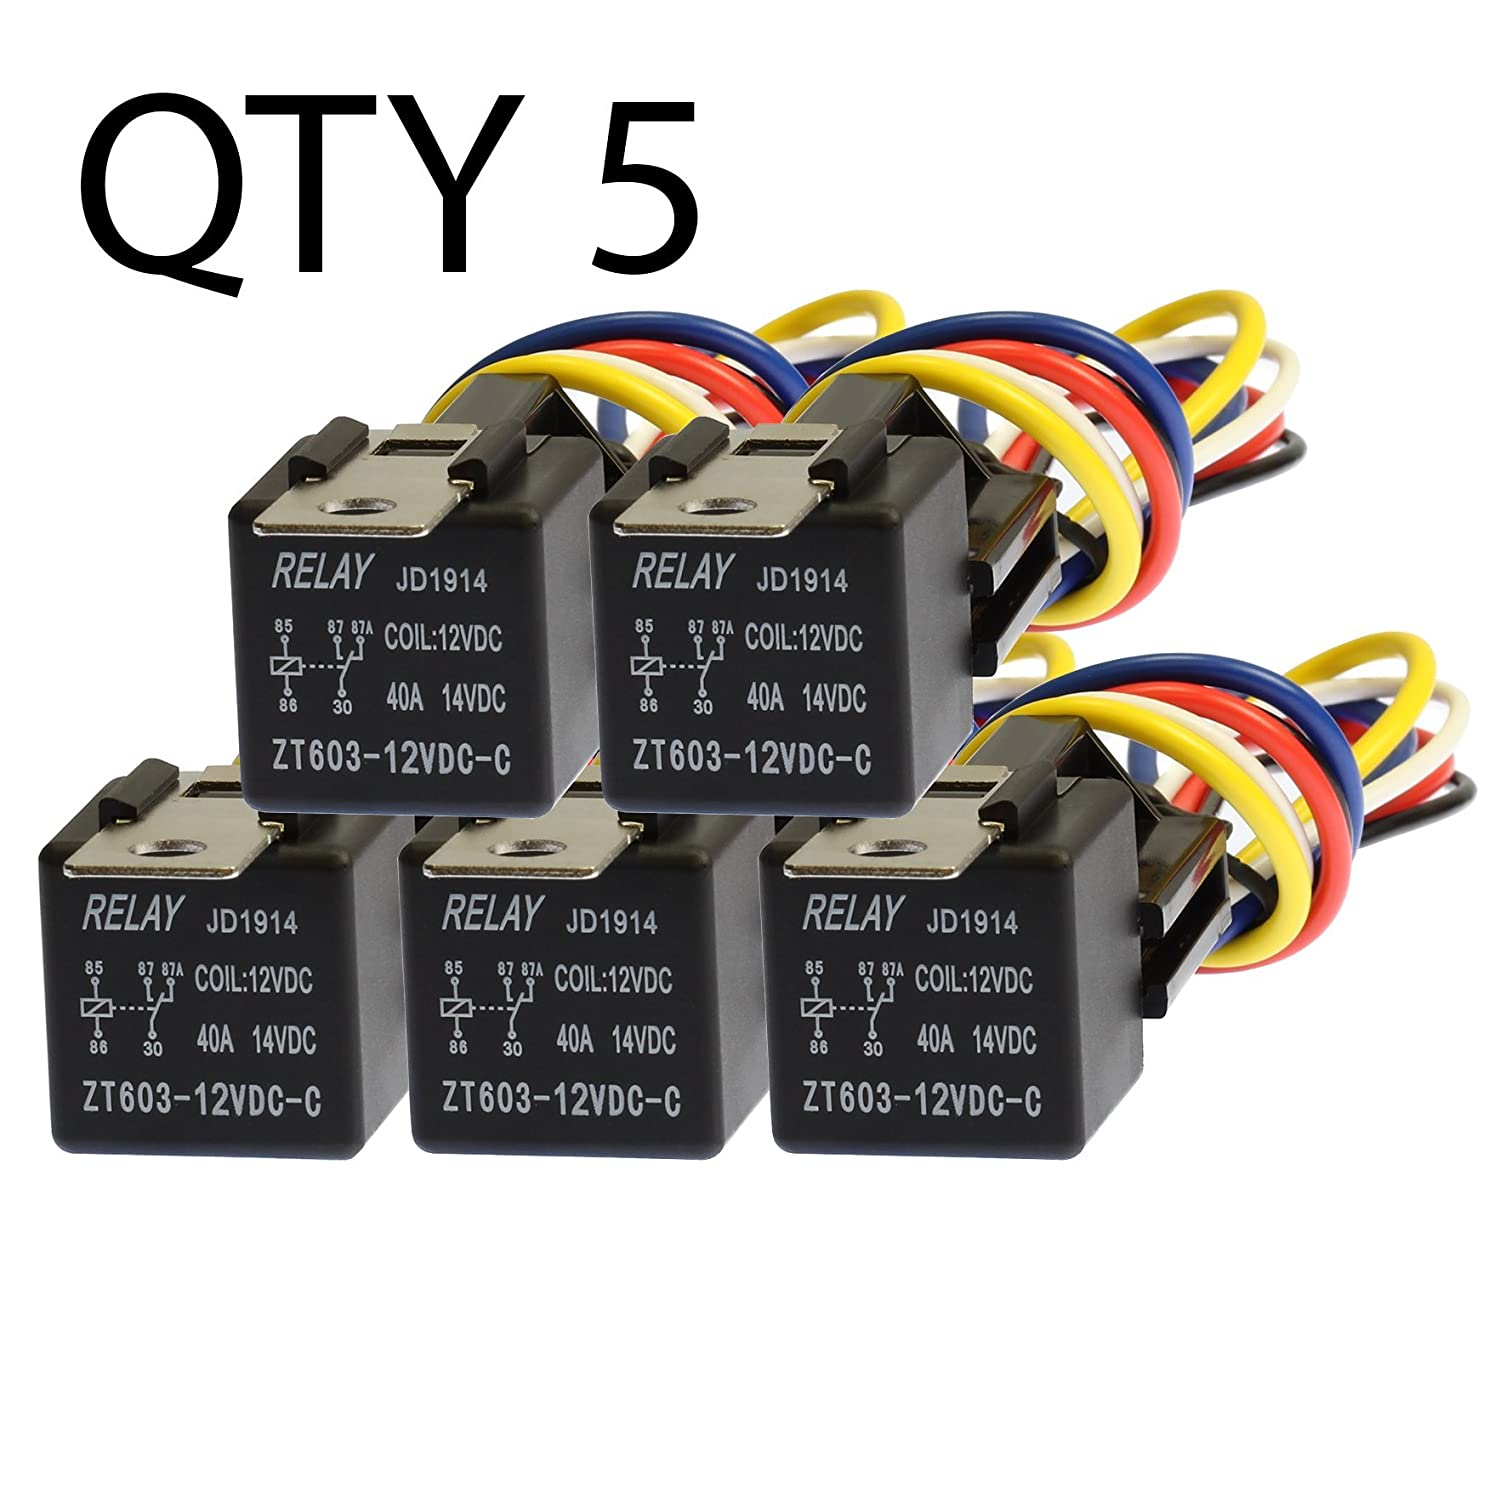 Amazon.com: VOODOO 5 Pack 30/40 Amp Relay Wiring Harness ... on